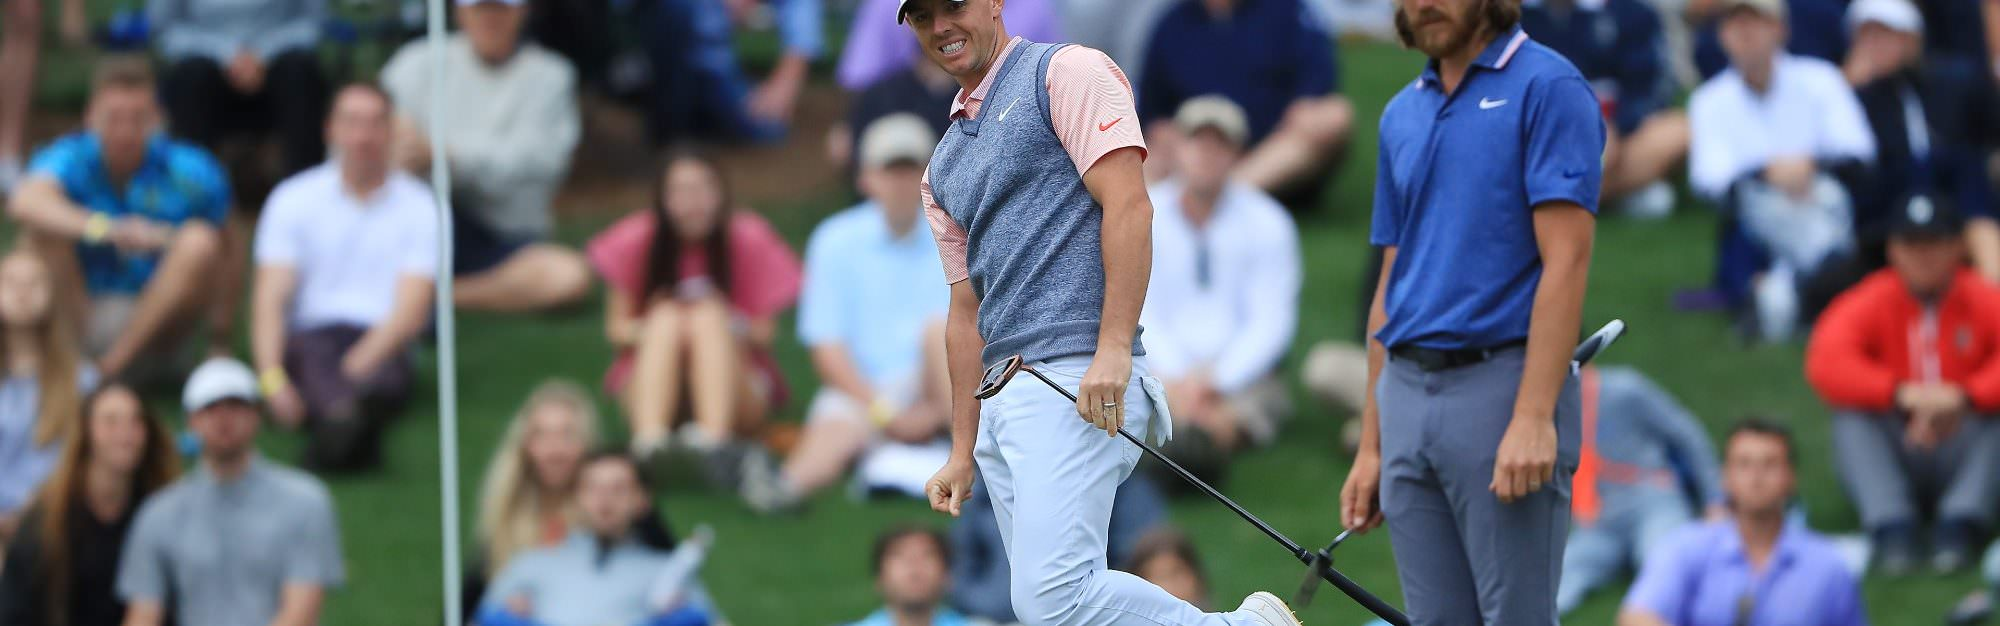 Fleetwood lets McIlroy off the hook for recent outburst